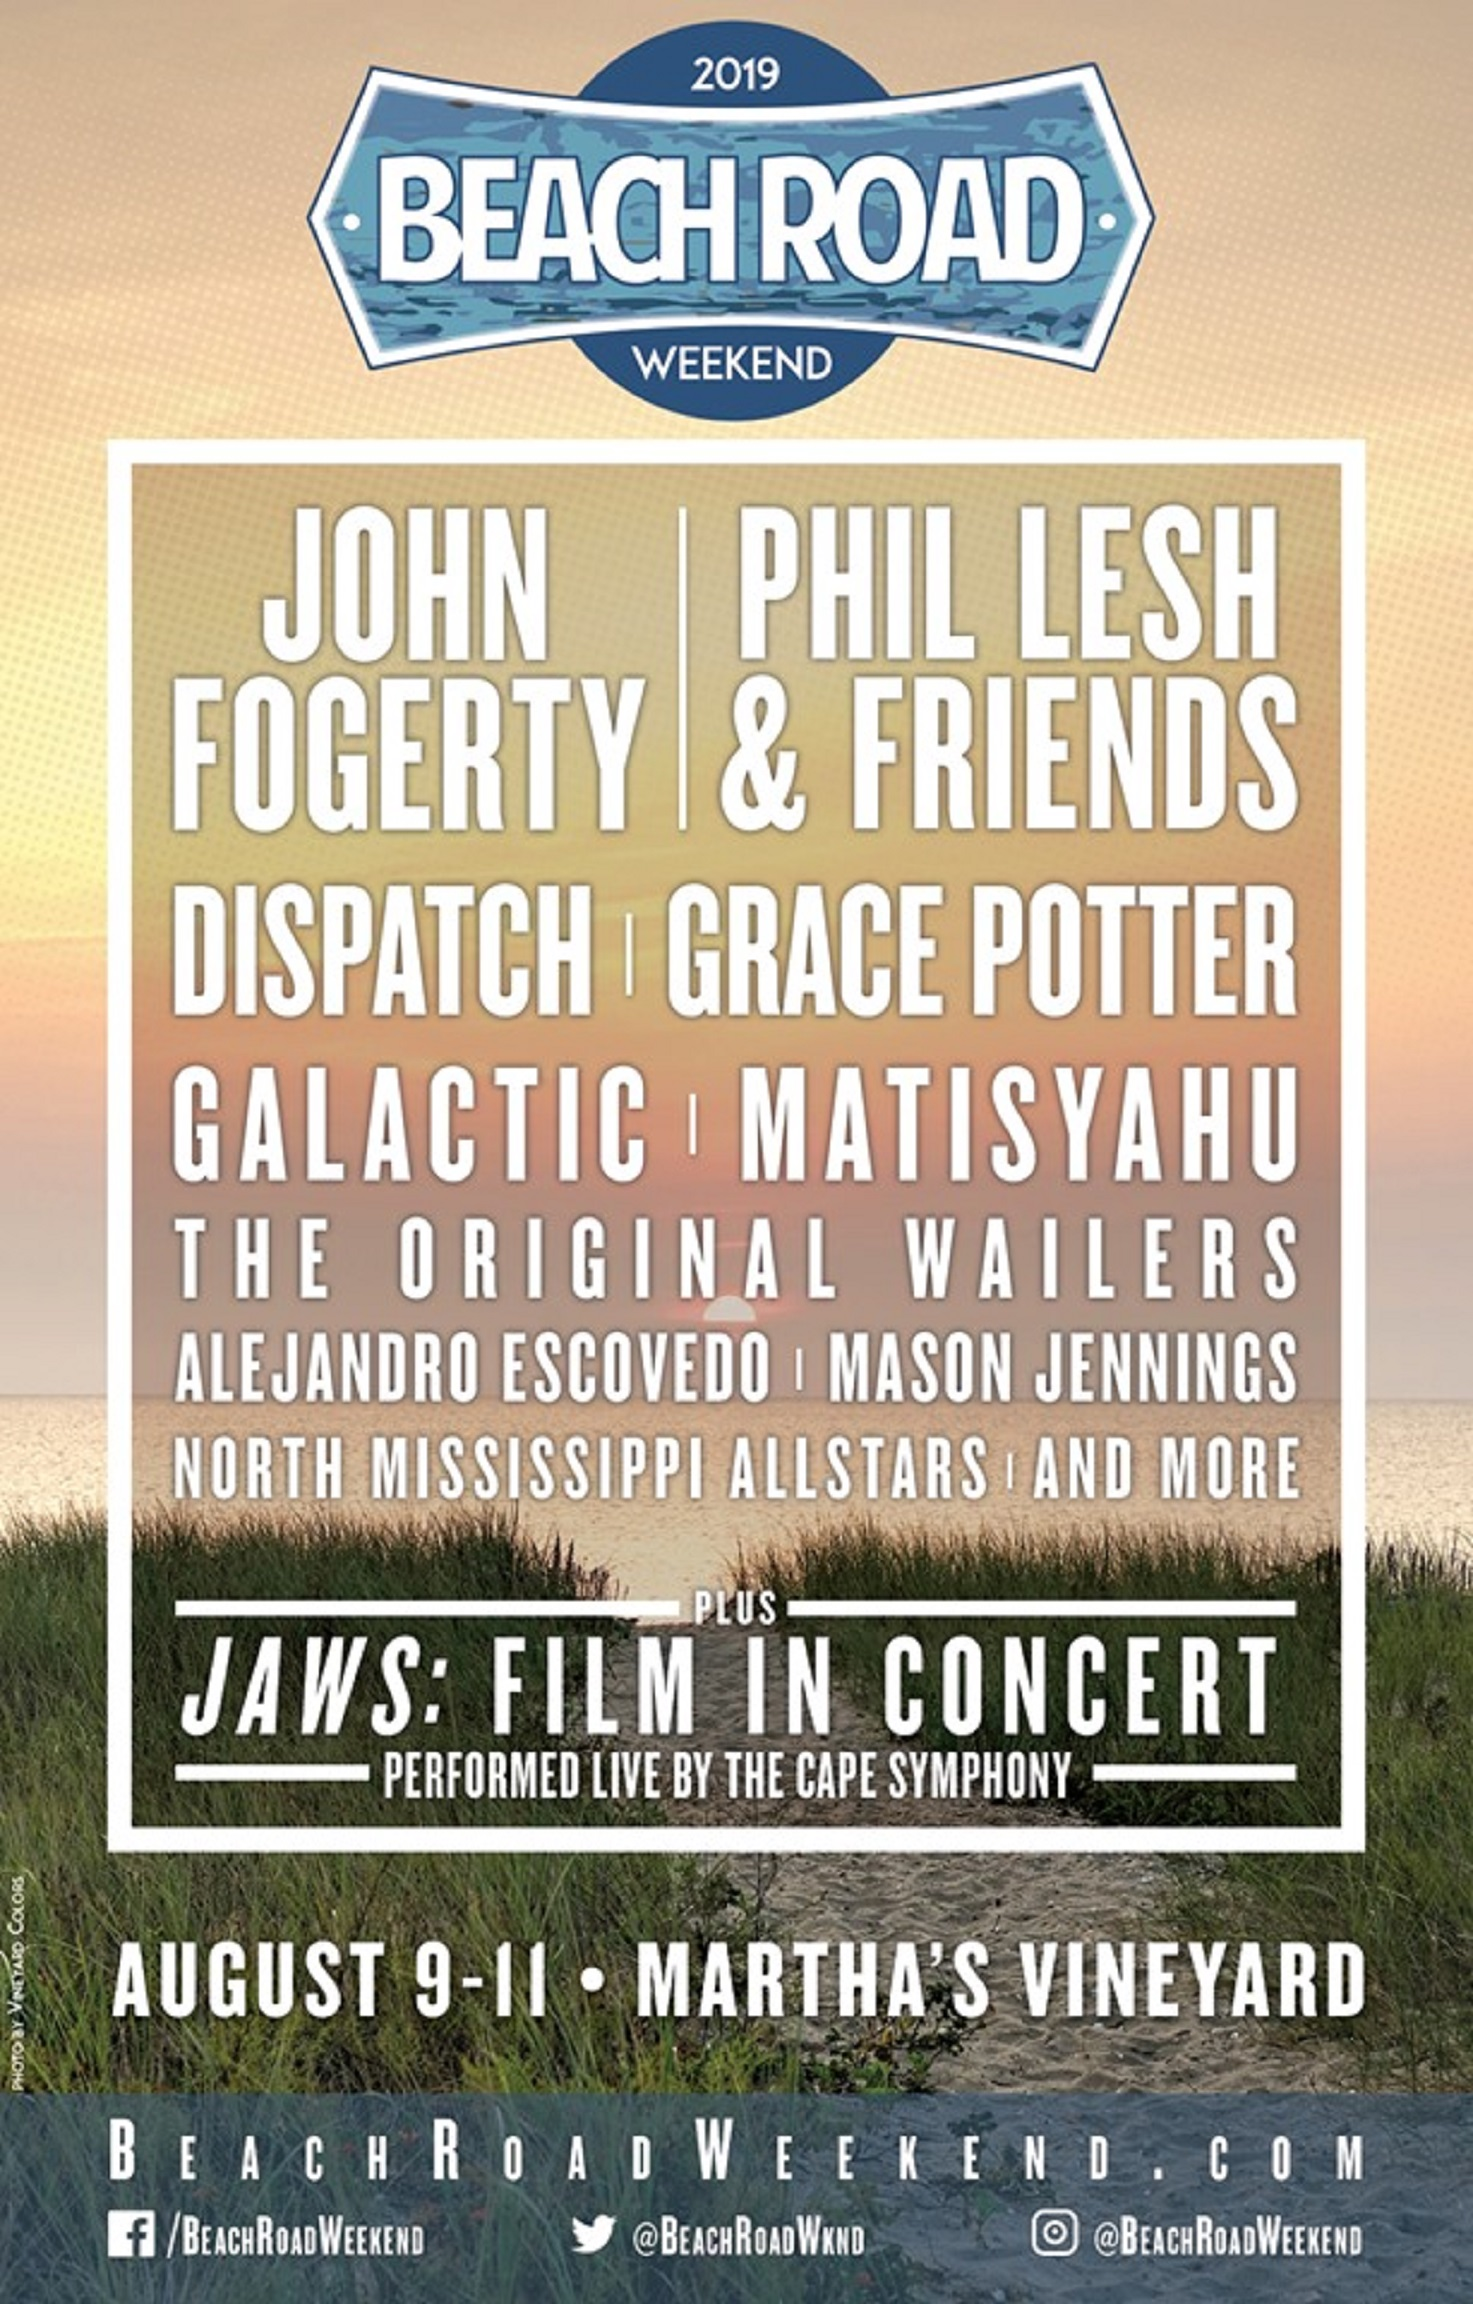 Inaugural Martha's Vineyard Festival to feature Phil Lesh and Friends, John Fogerty, Grace Potter, Dispatch and more